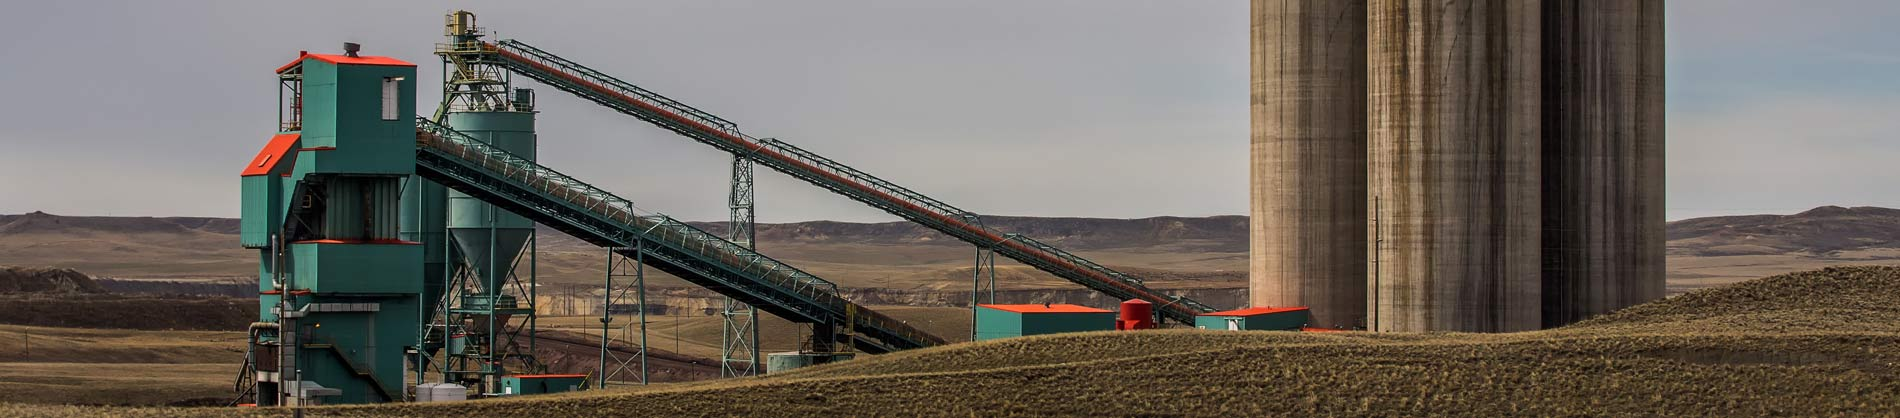 coal mining Gillette Wyoming